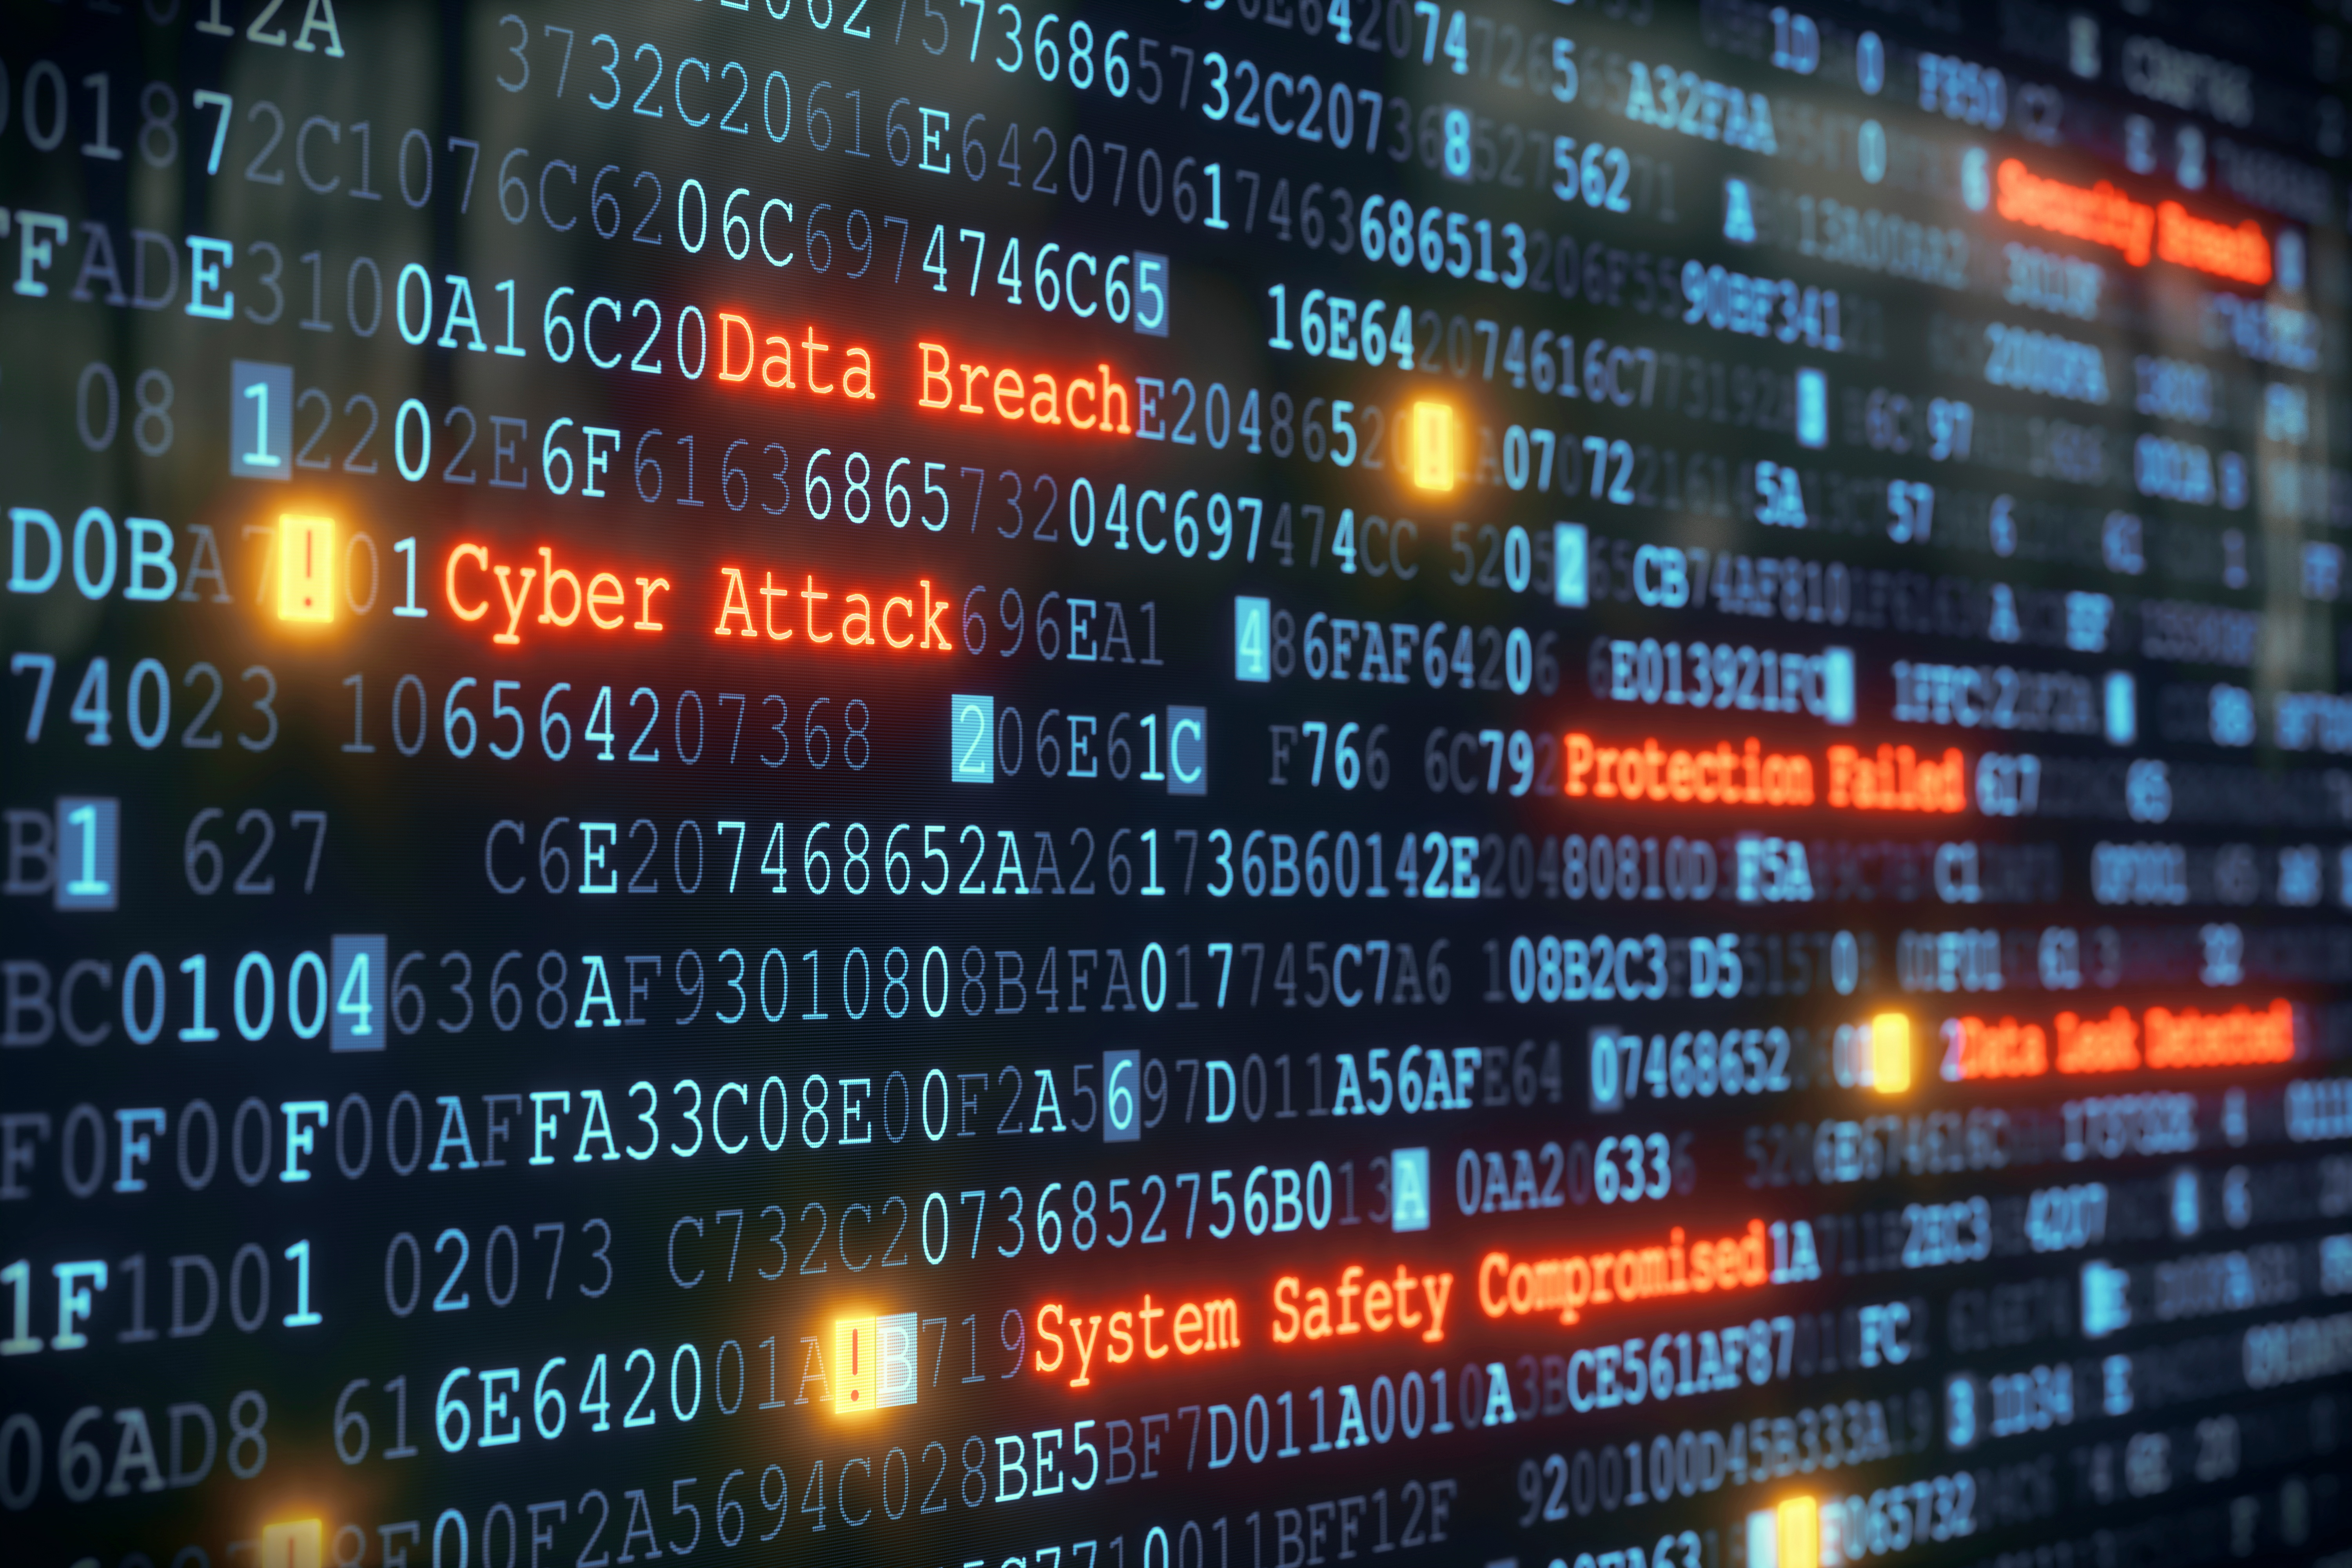 Phishing Attacks against SaaS, Webmail Services Rise Sharply in Q1